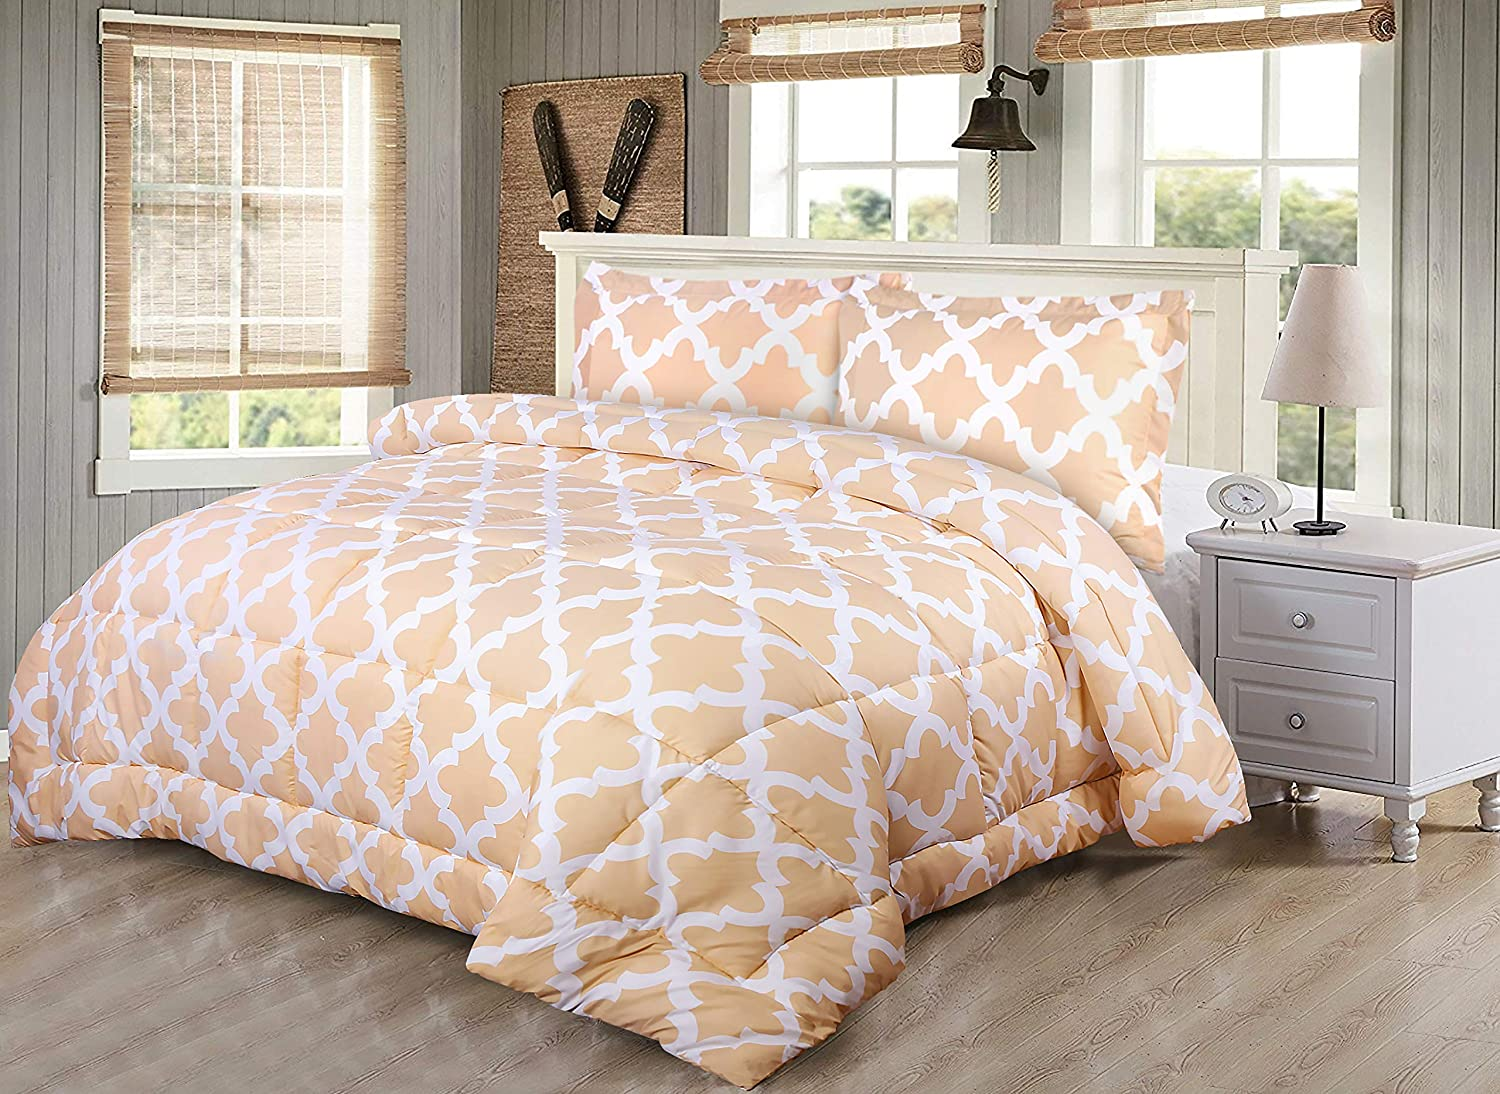 Utopia Bedding Printed Comforter Set (Queen, Beige) with 2 Pillow Shams - Luxurious Brushed Microfiber - Down Alternative Comforter - Soft and Comfortable - Machine Washable